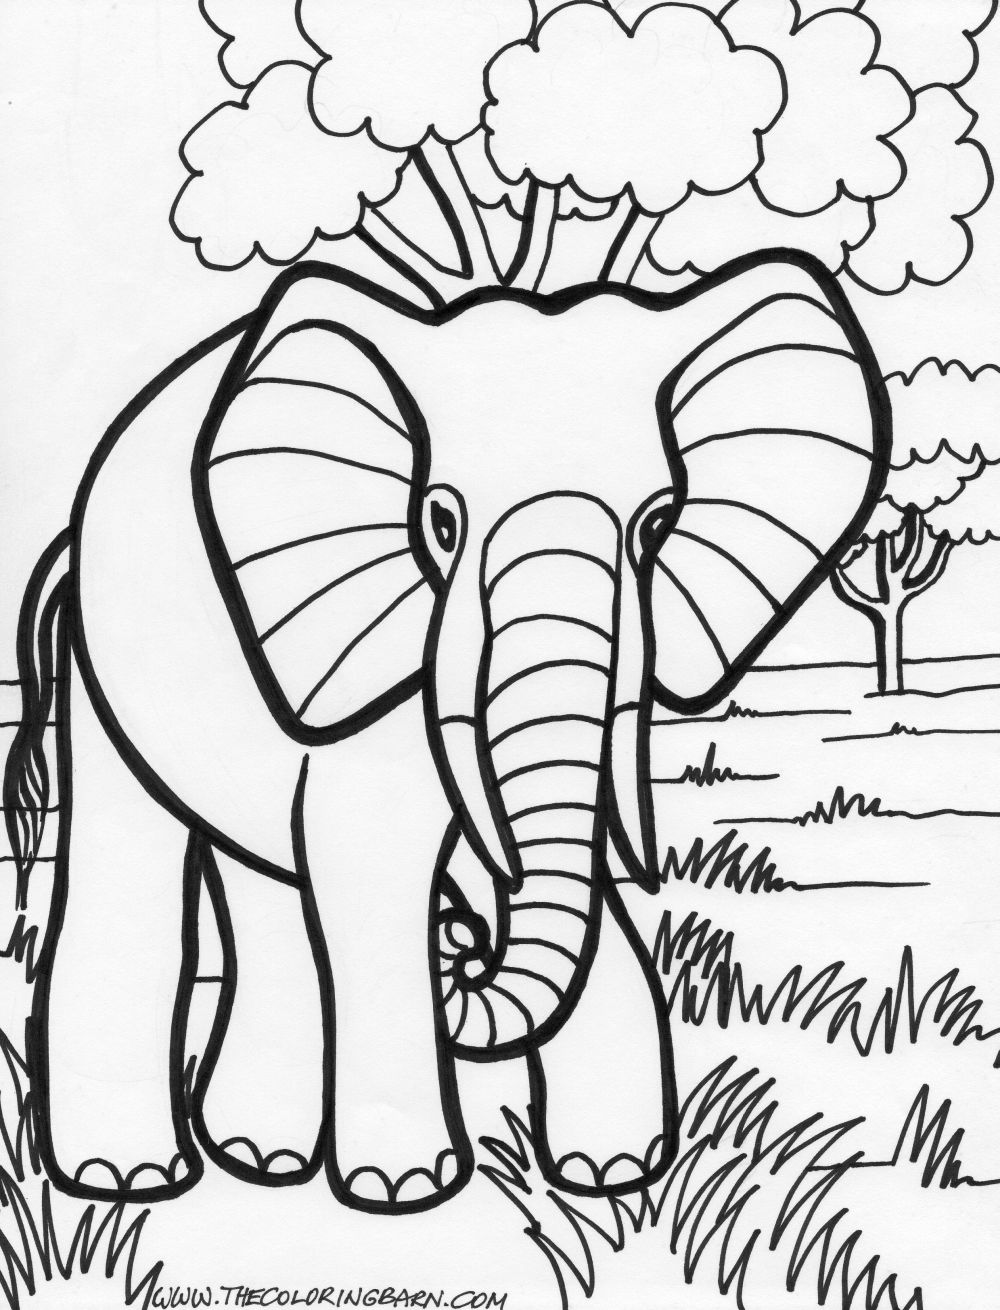 colouring pictures of elephant transmissionpress 14 elephant coloring pages for kids of pictures colouring elephant